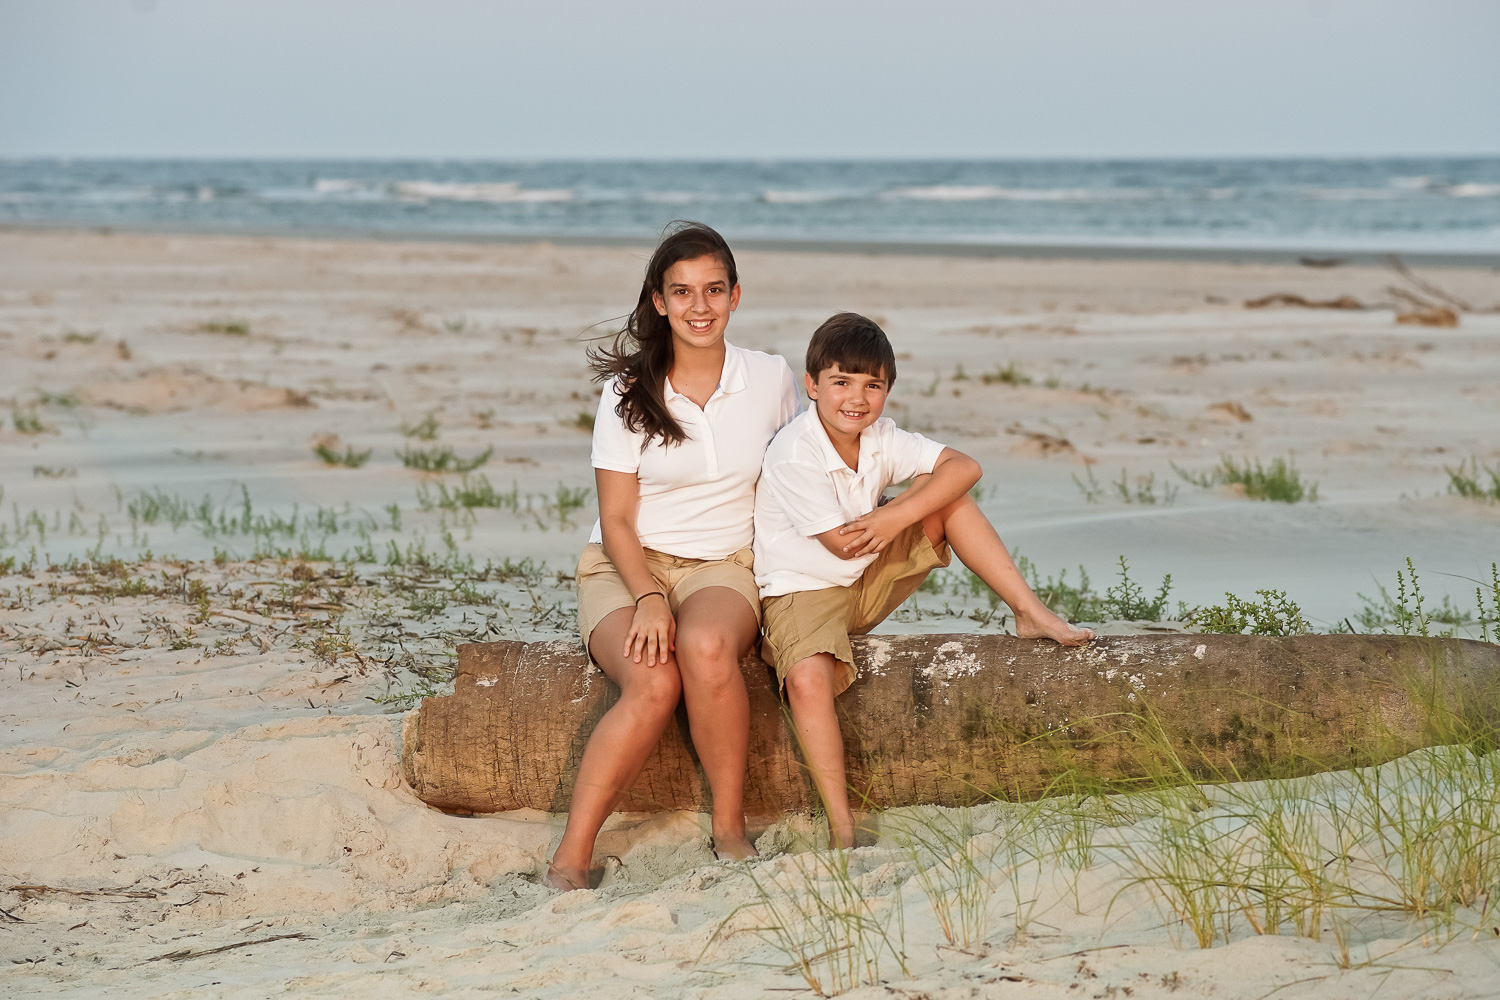 beach_portraits_beaufort-73.jpg